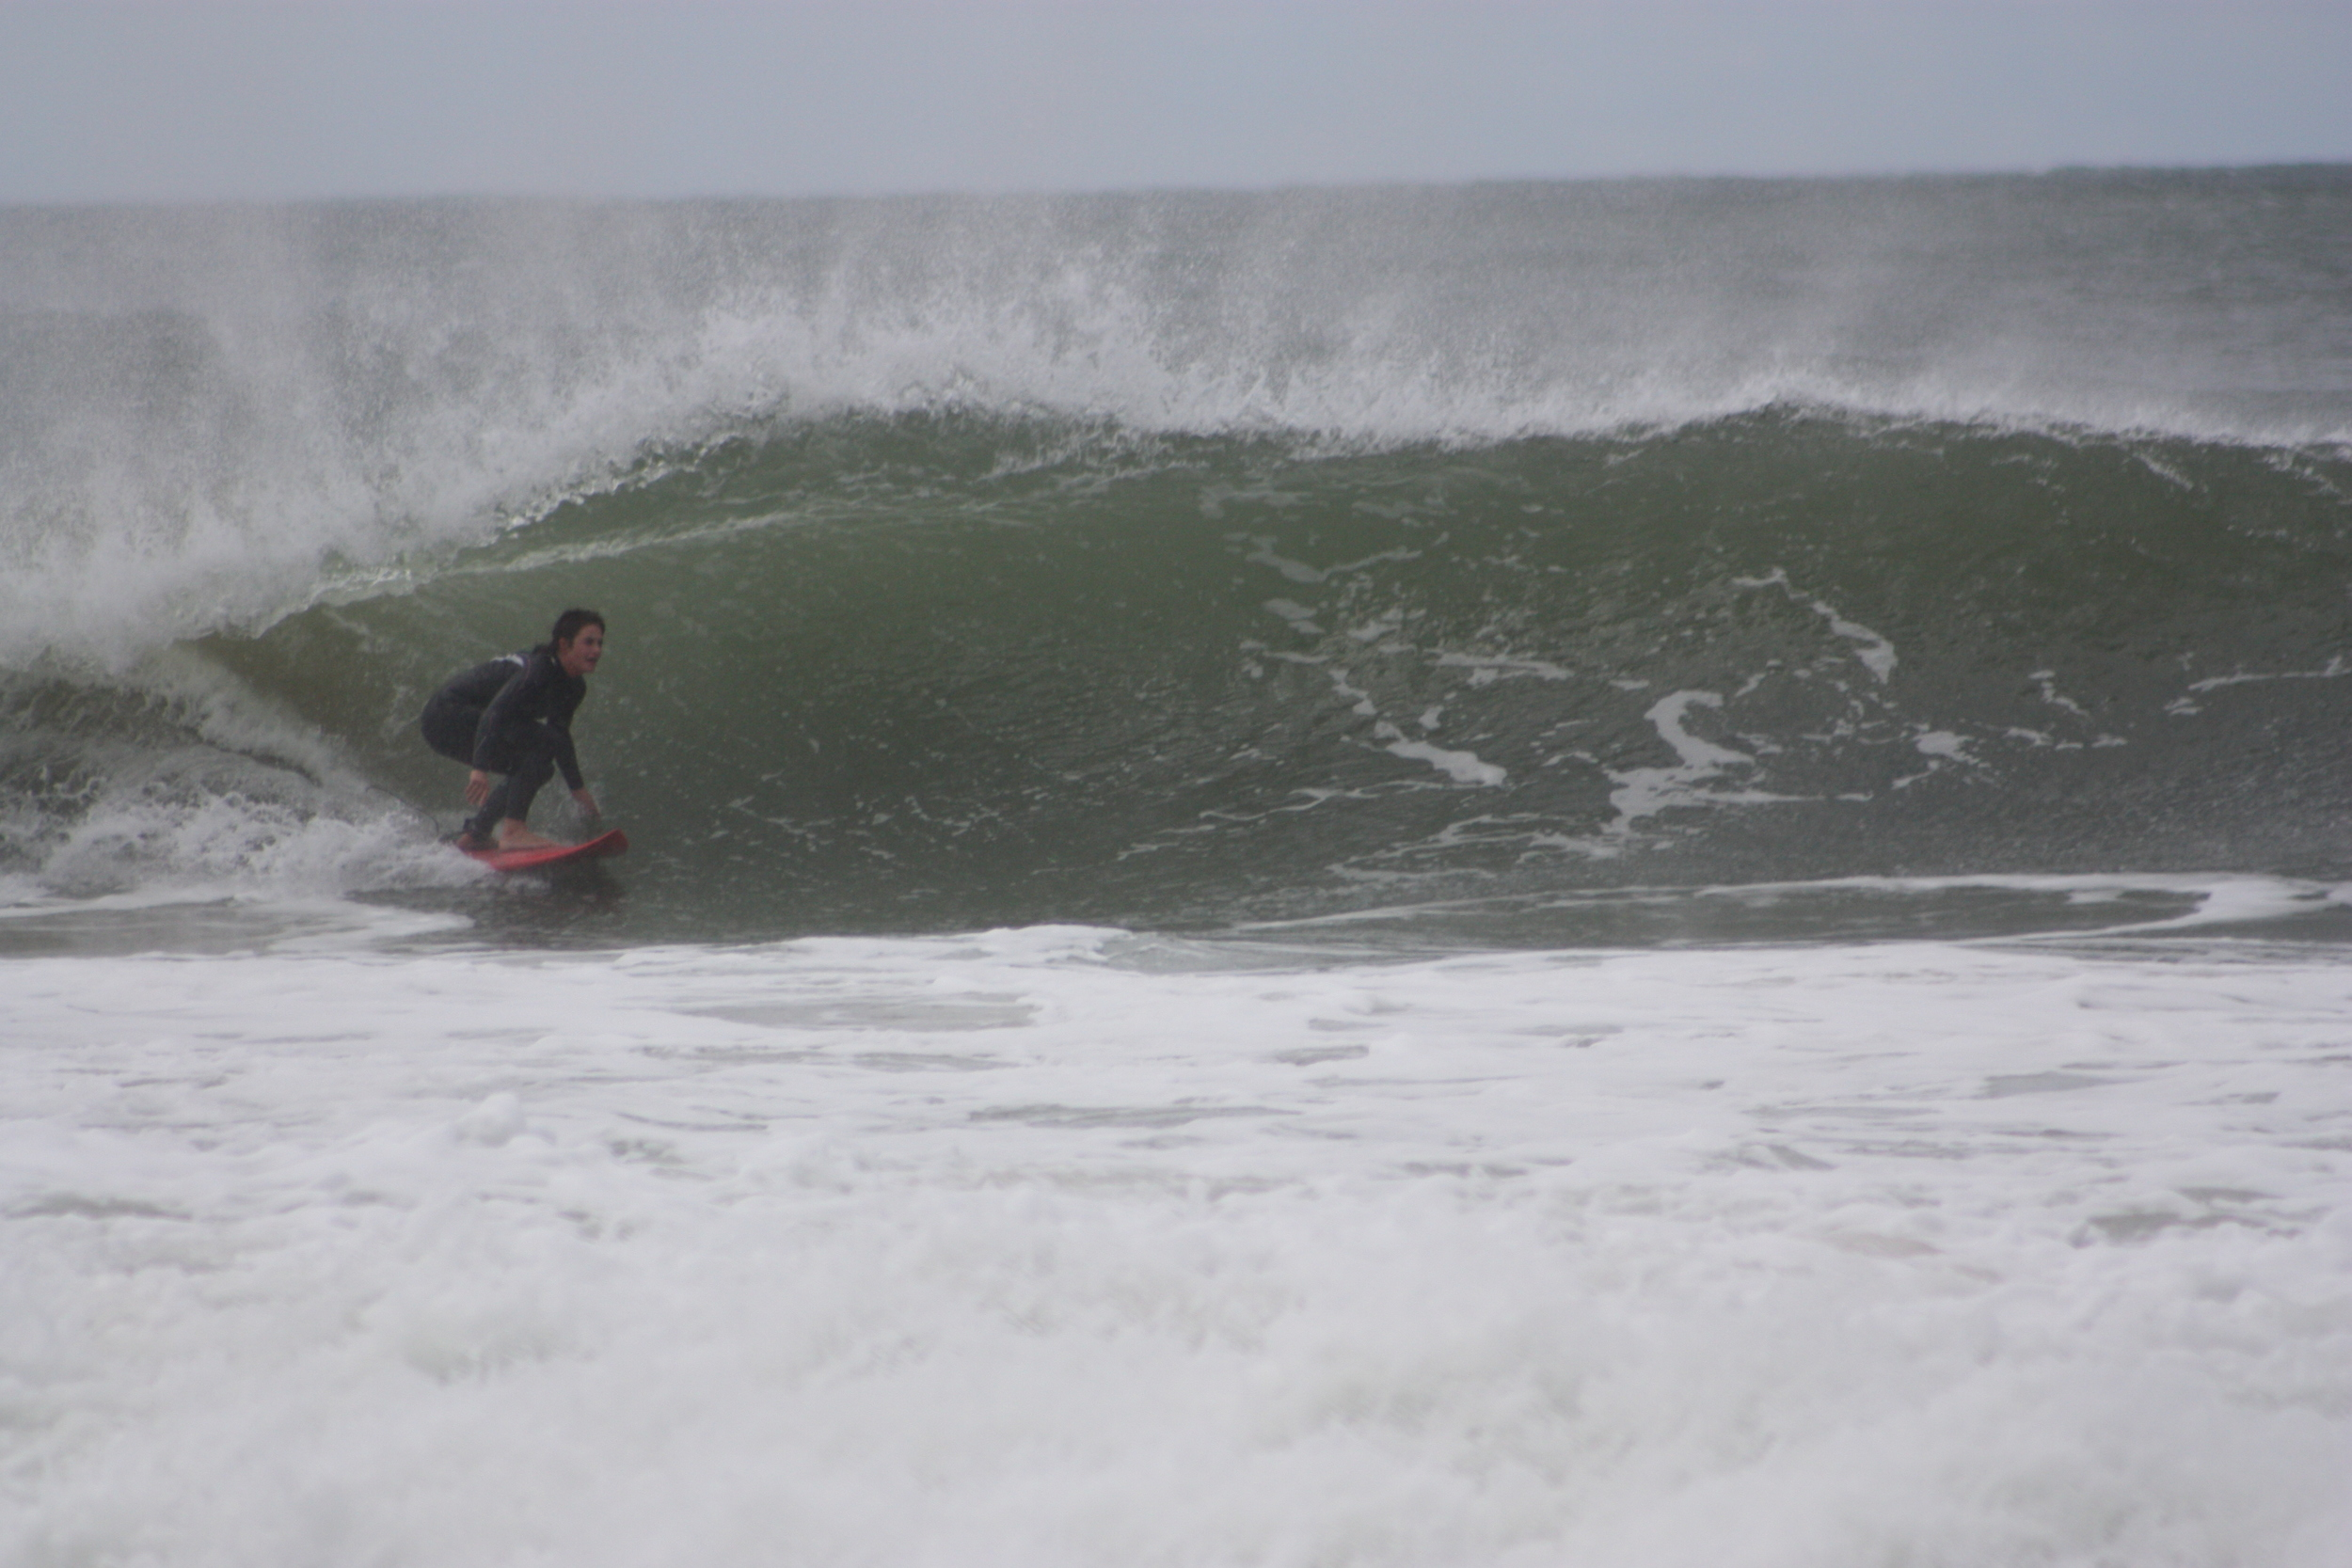 Me at Puckeys in winter. Pic by Jess Bramley Alves